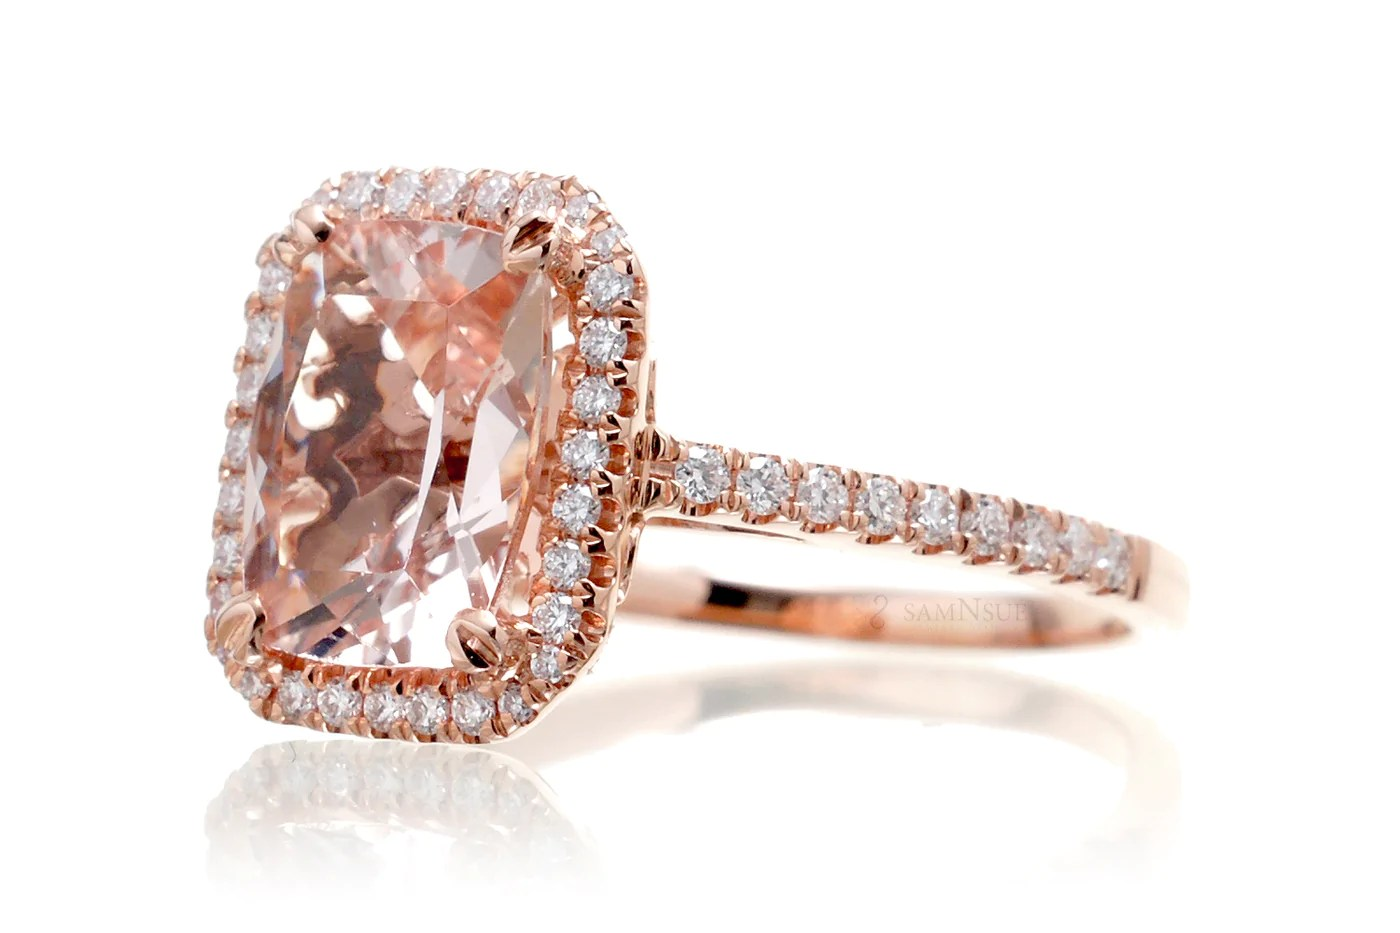 Morganite 11x9 Cushion Halo Diamond Solitaire Engagement